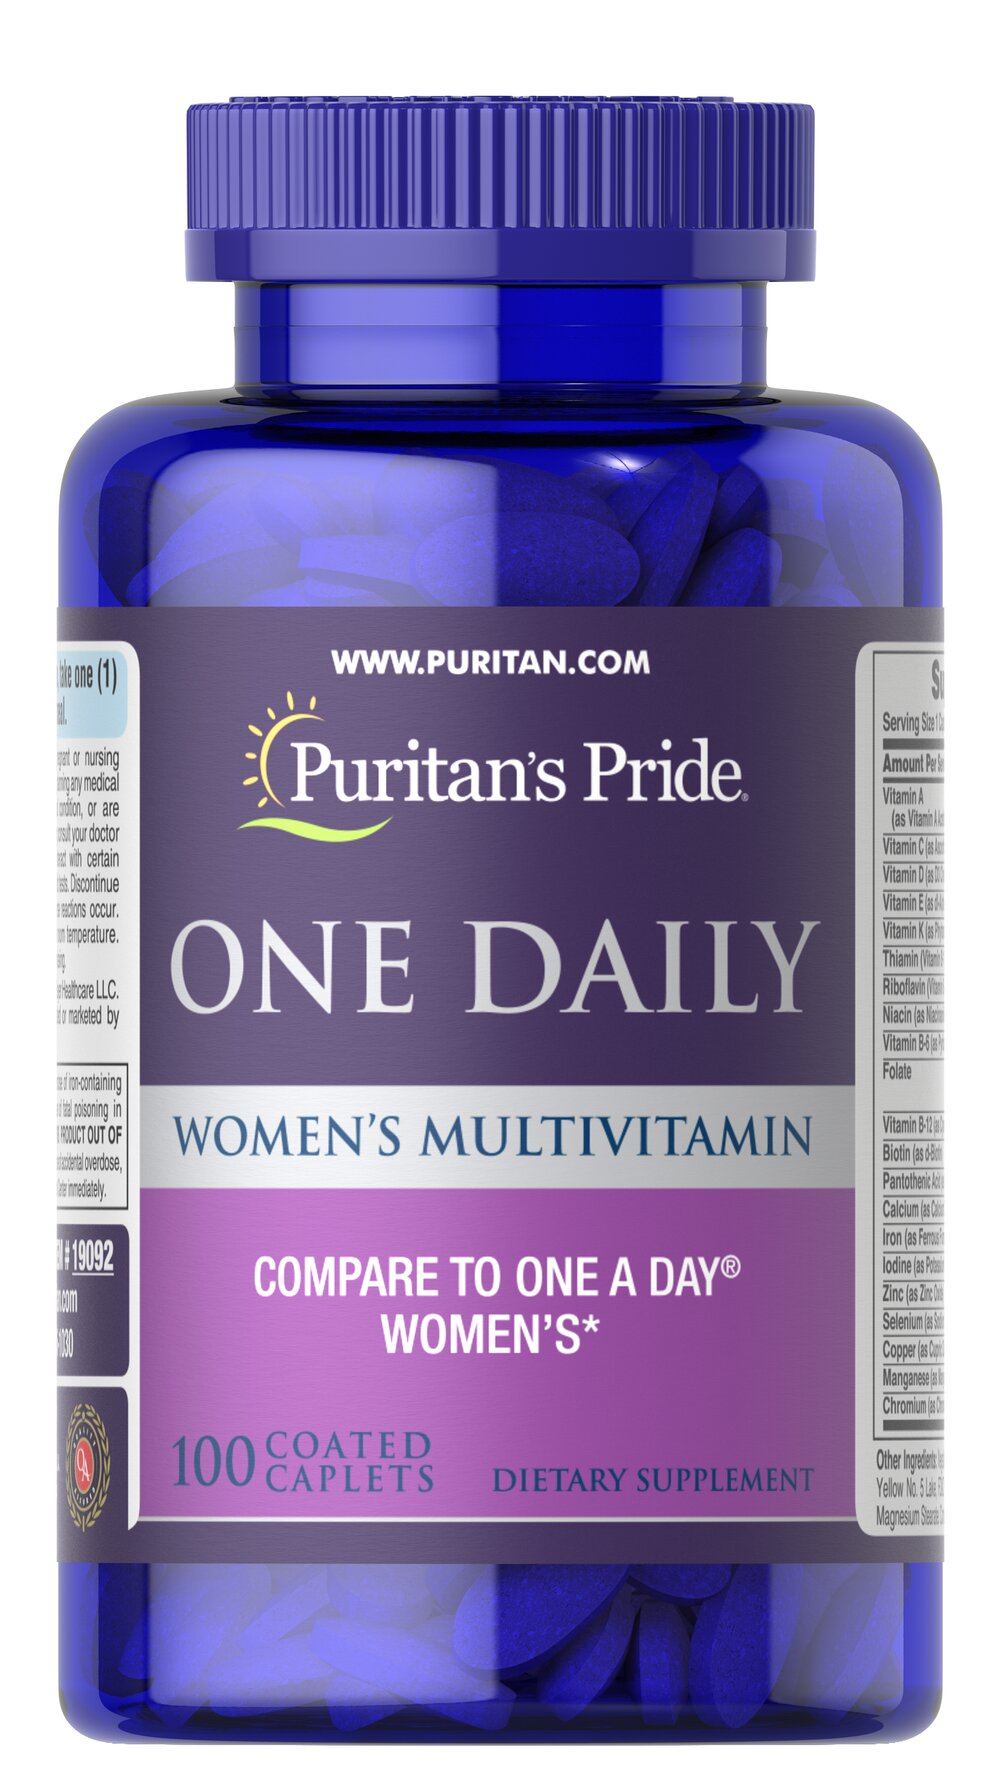 One Daily Women's Multivitamin  100 Caplets  $9.79